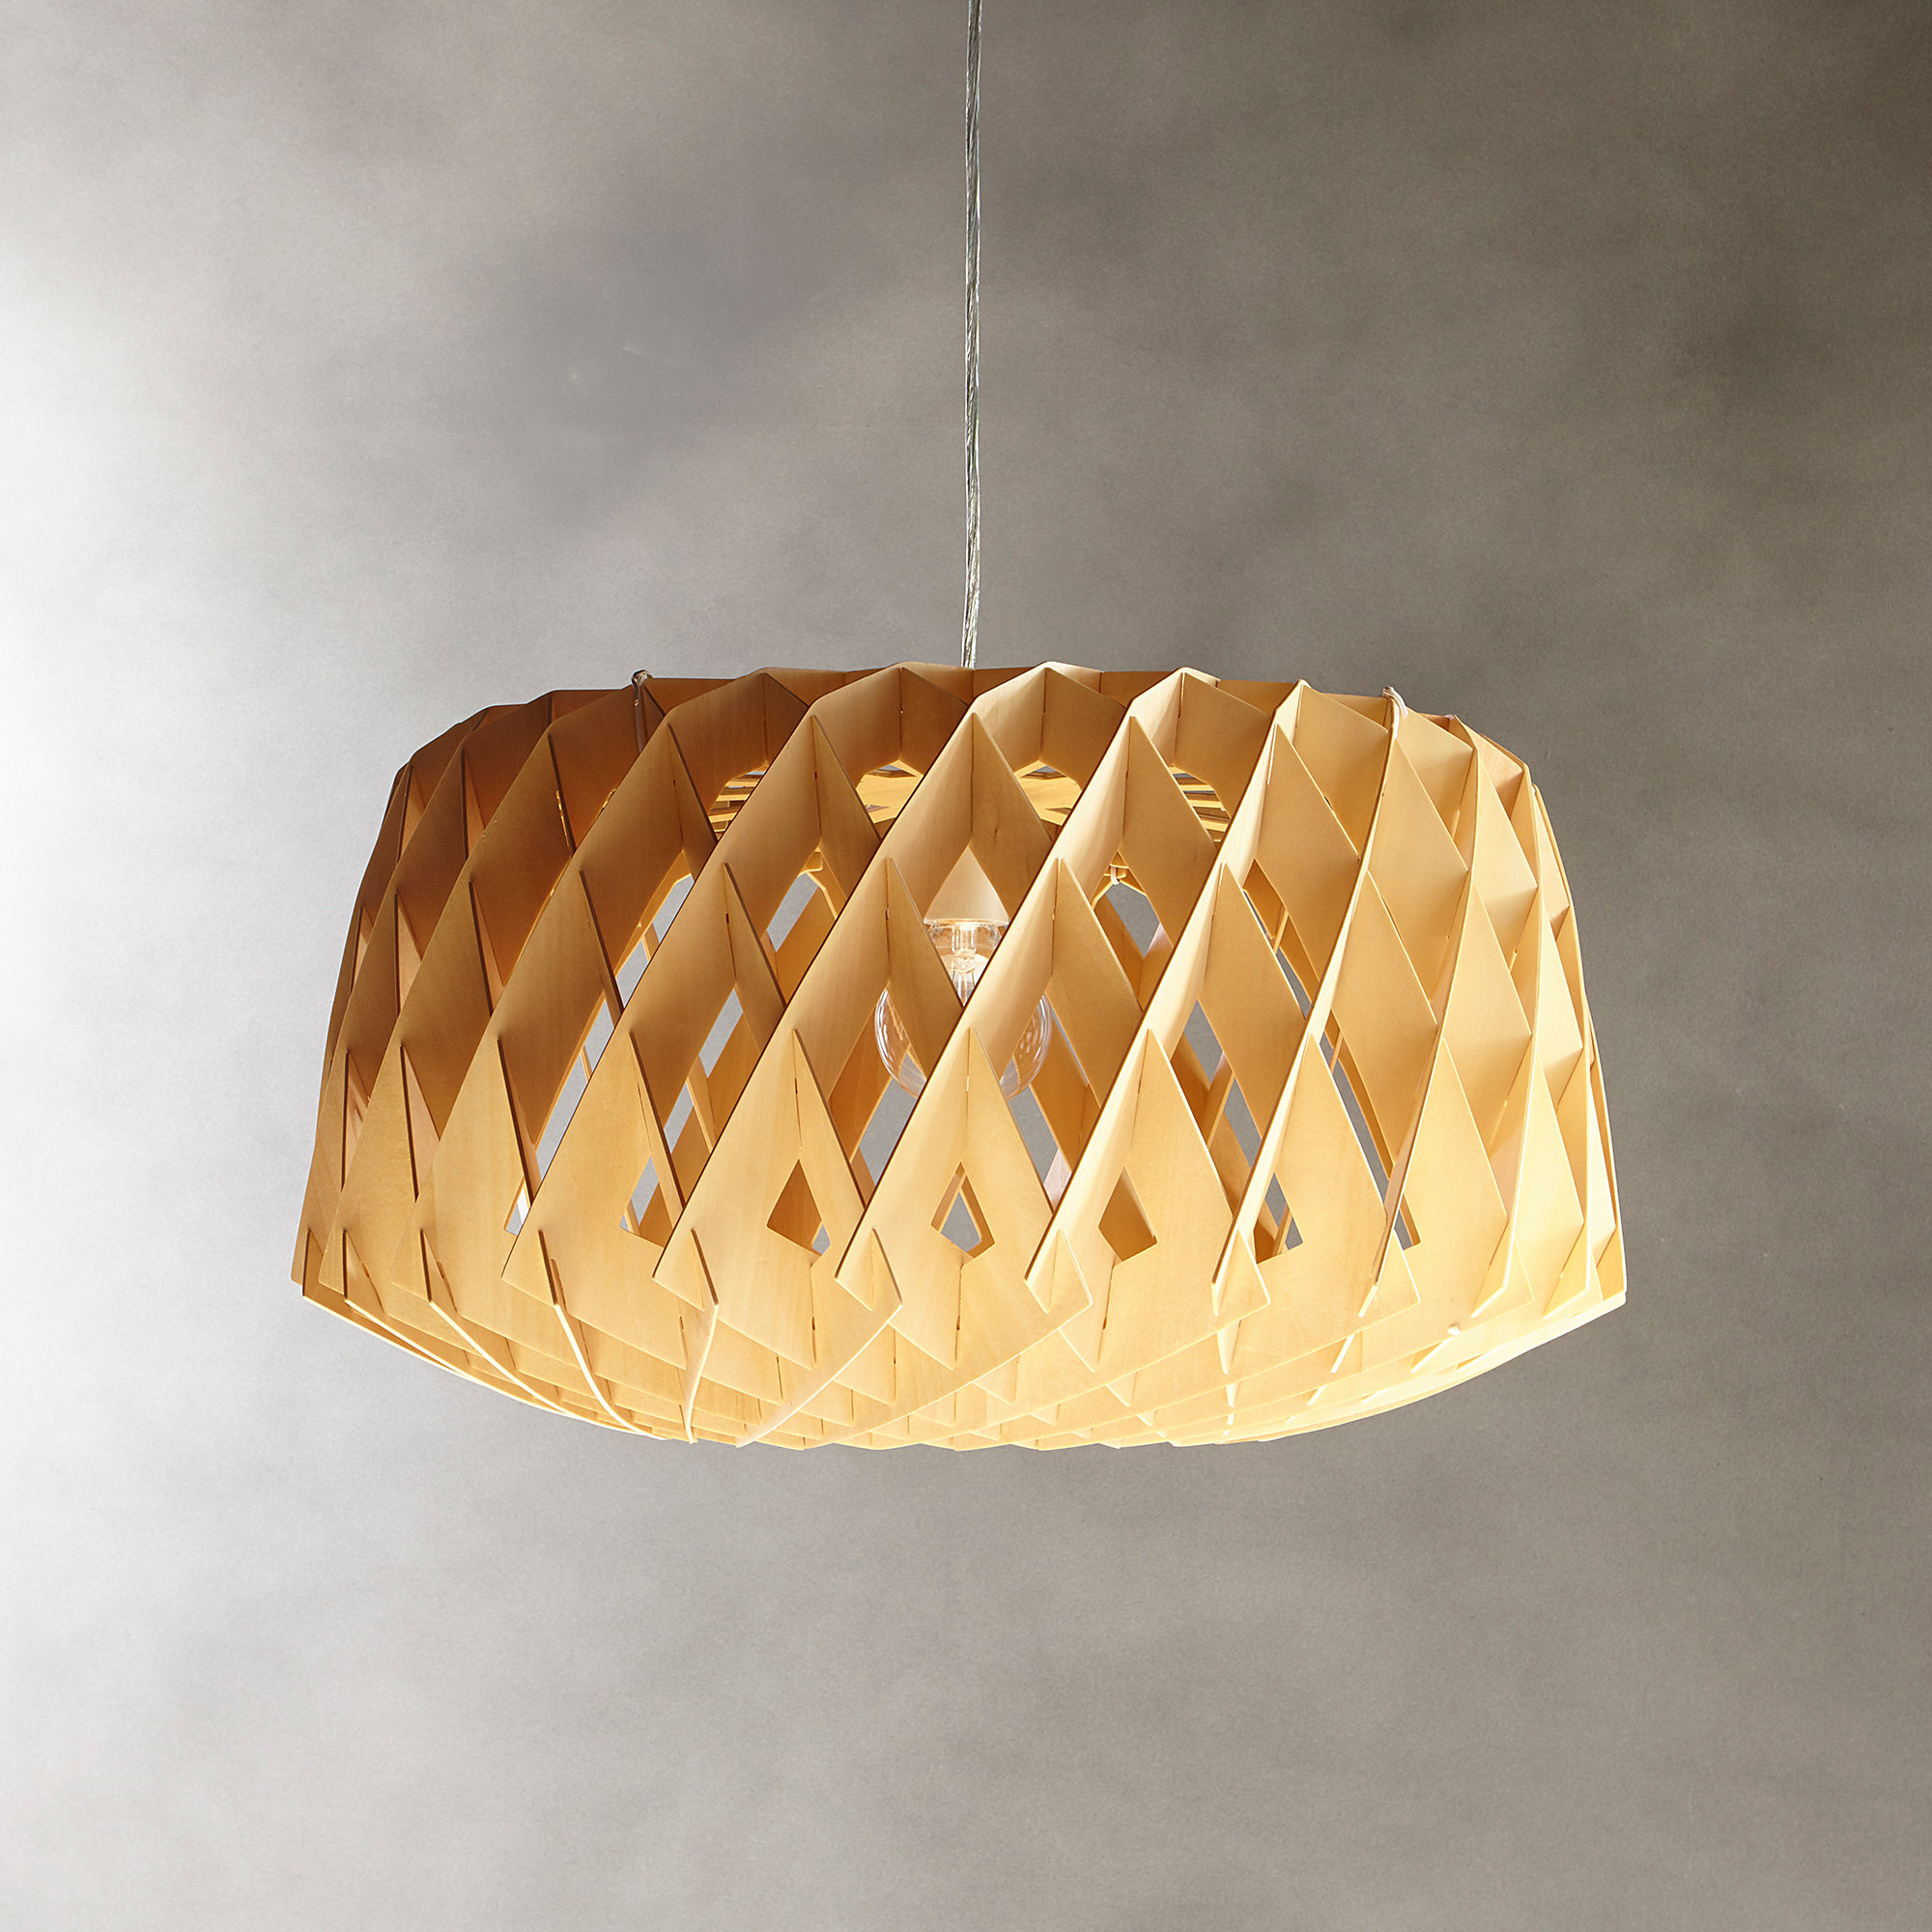 Brayden Studio Melora 1 Light Single Geometric Pendant With Regard To Fashionable Melora 1 Light Single Geometric Pendants (View 5 of 25)